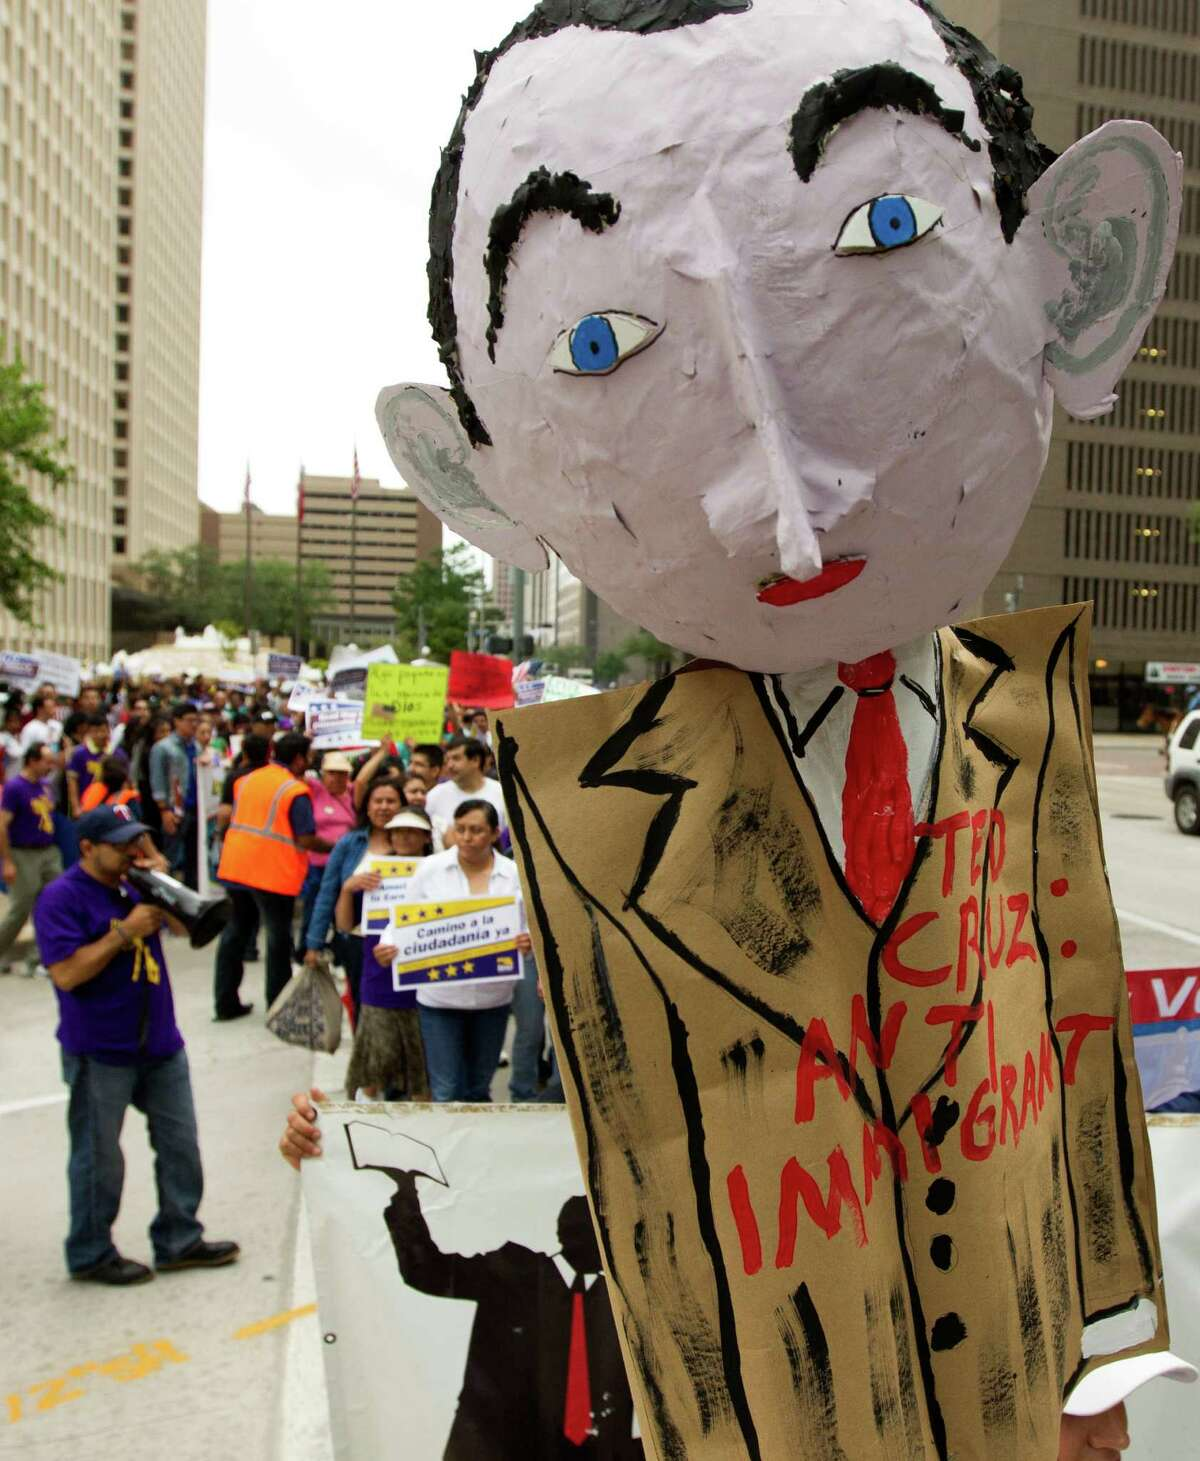 A paper mache doll of Ted Cruz is held up as hundreds of protesters marched along Smith St. to call on the Texas Senator to support immigration reform with a clear path to citizenship on Wednesday, April 10, 2013, in Houston.